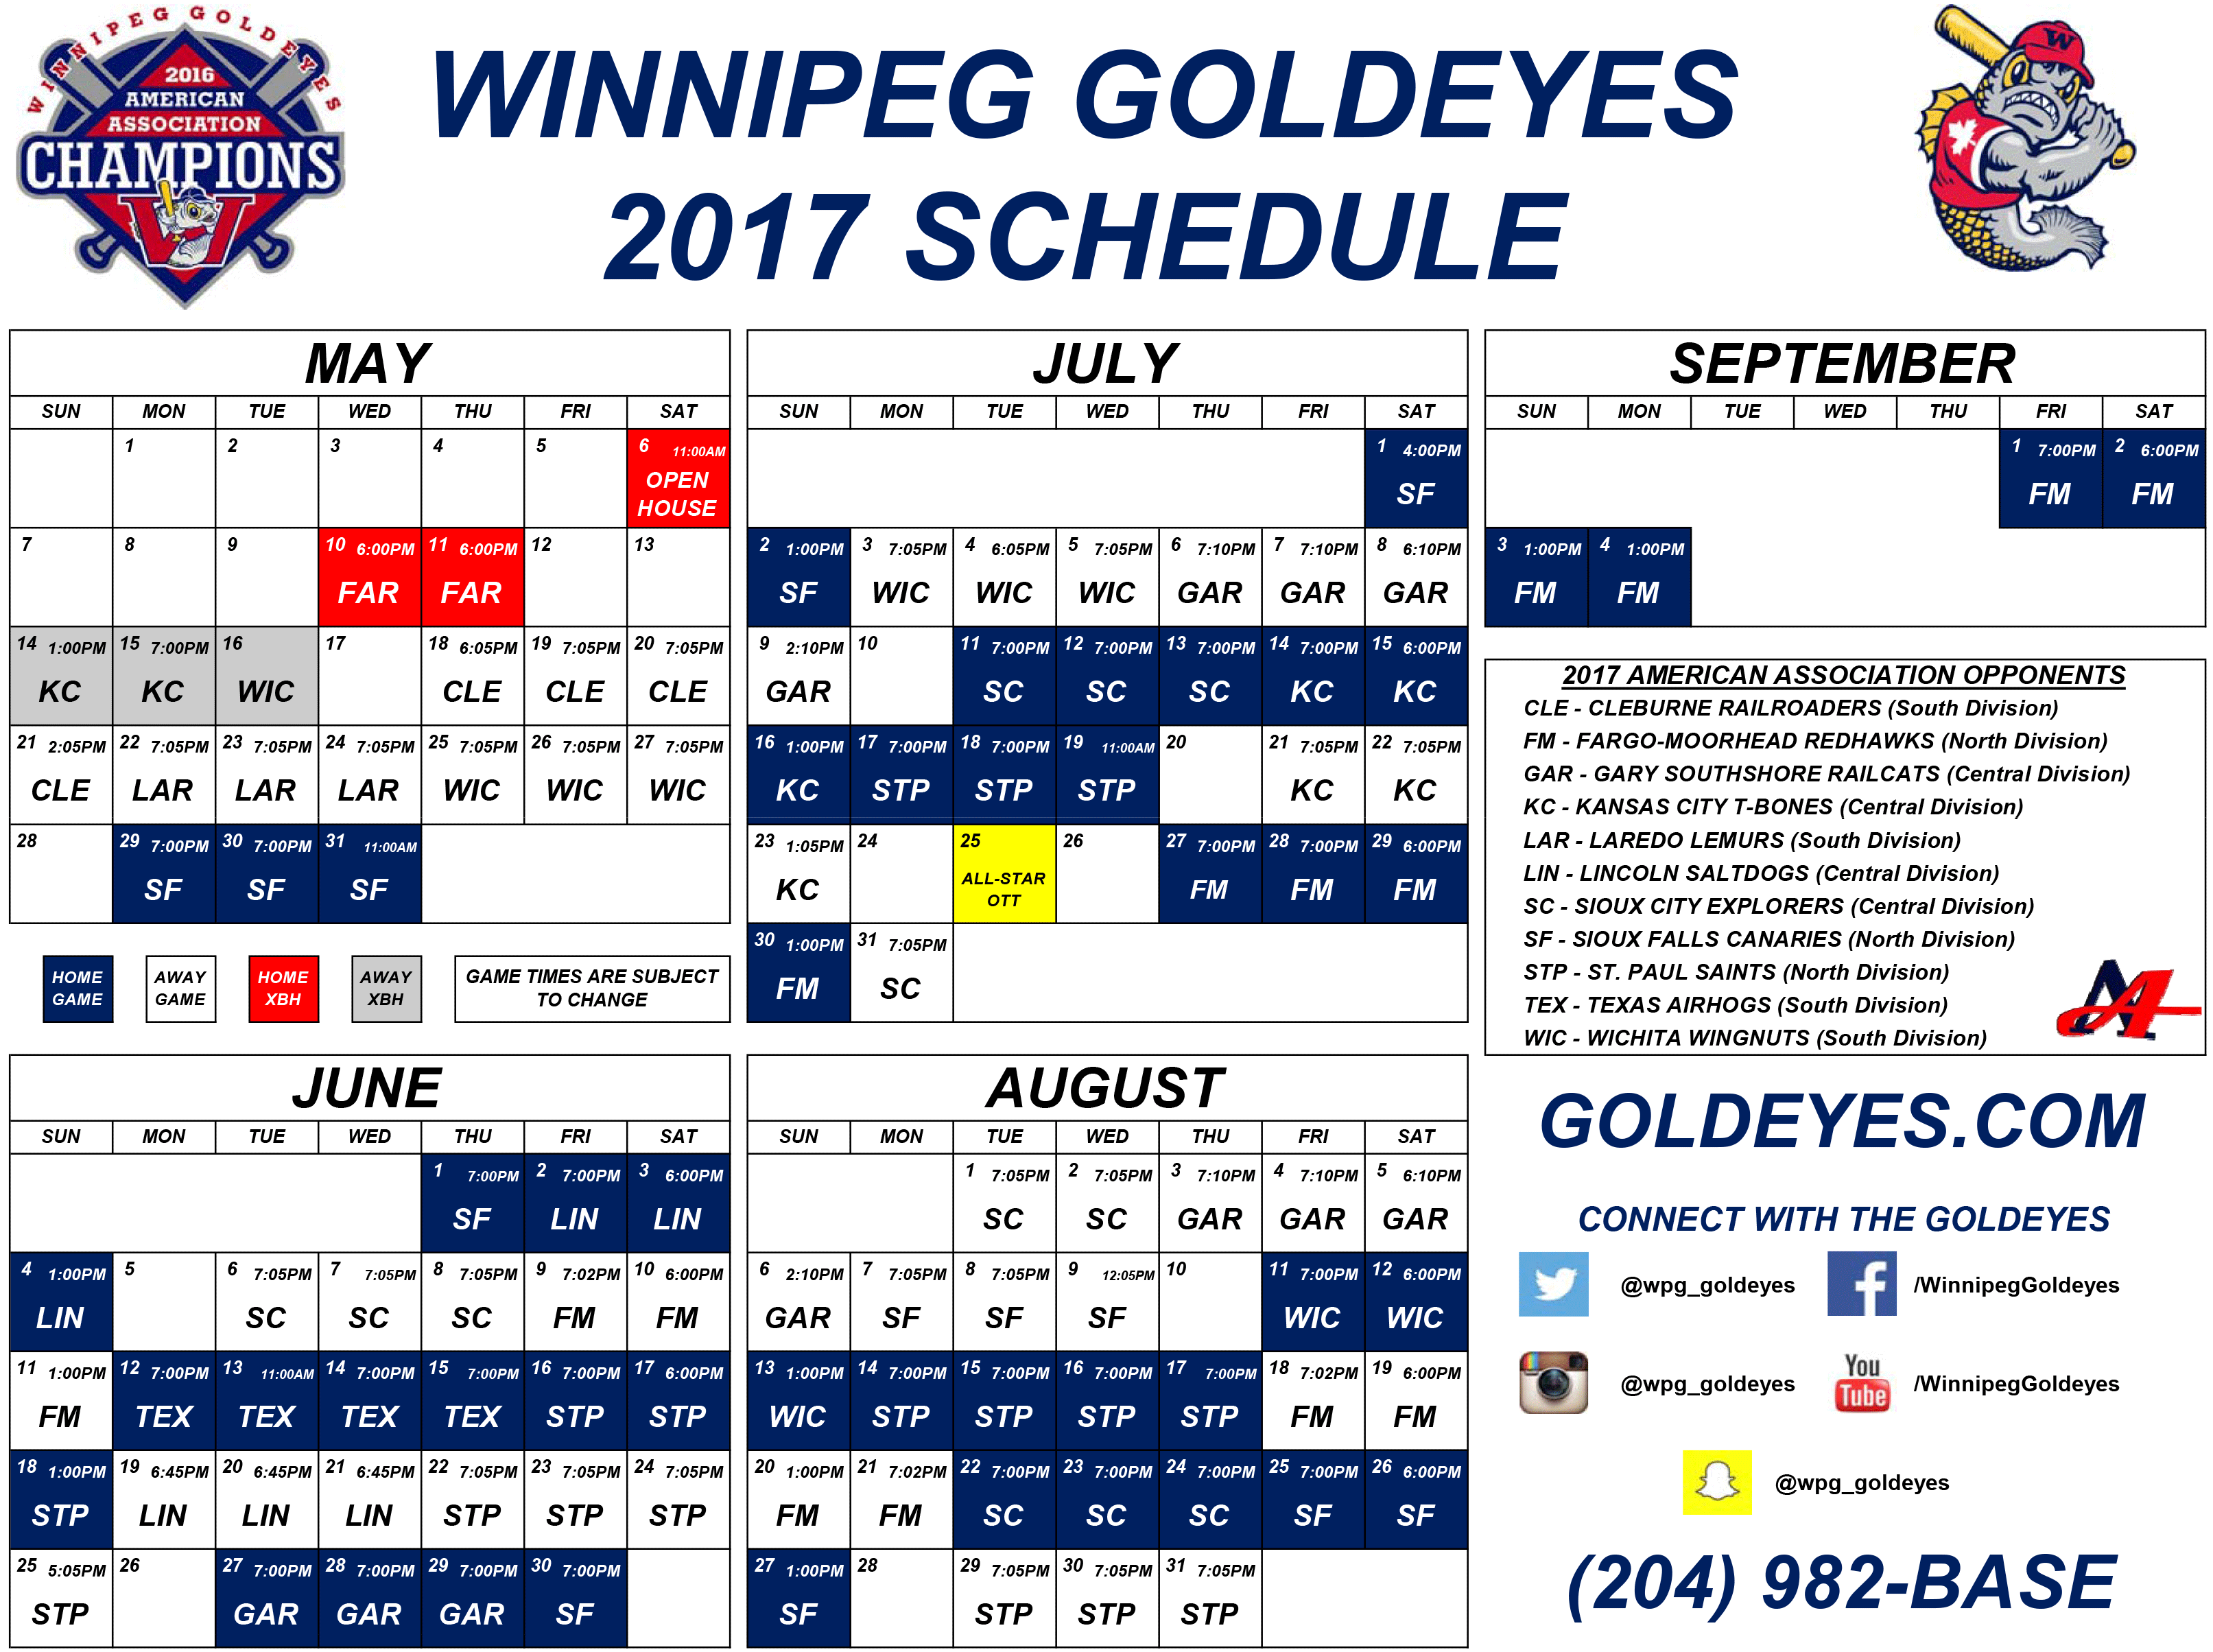 2017-winnipeg-goldeyes-schedule-november-9th